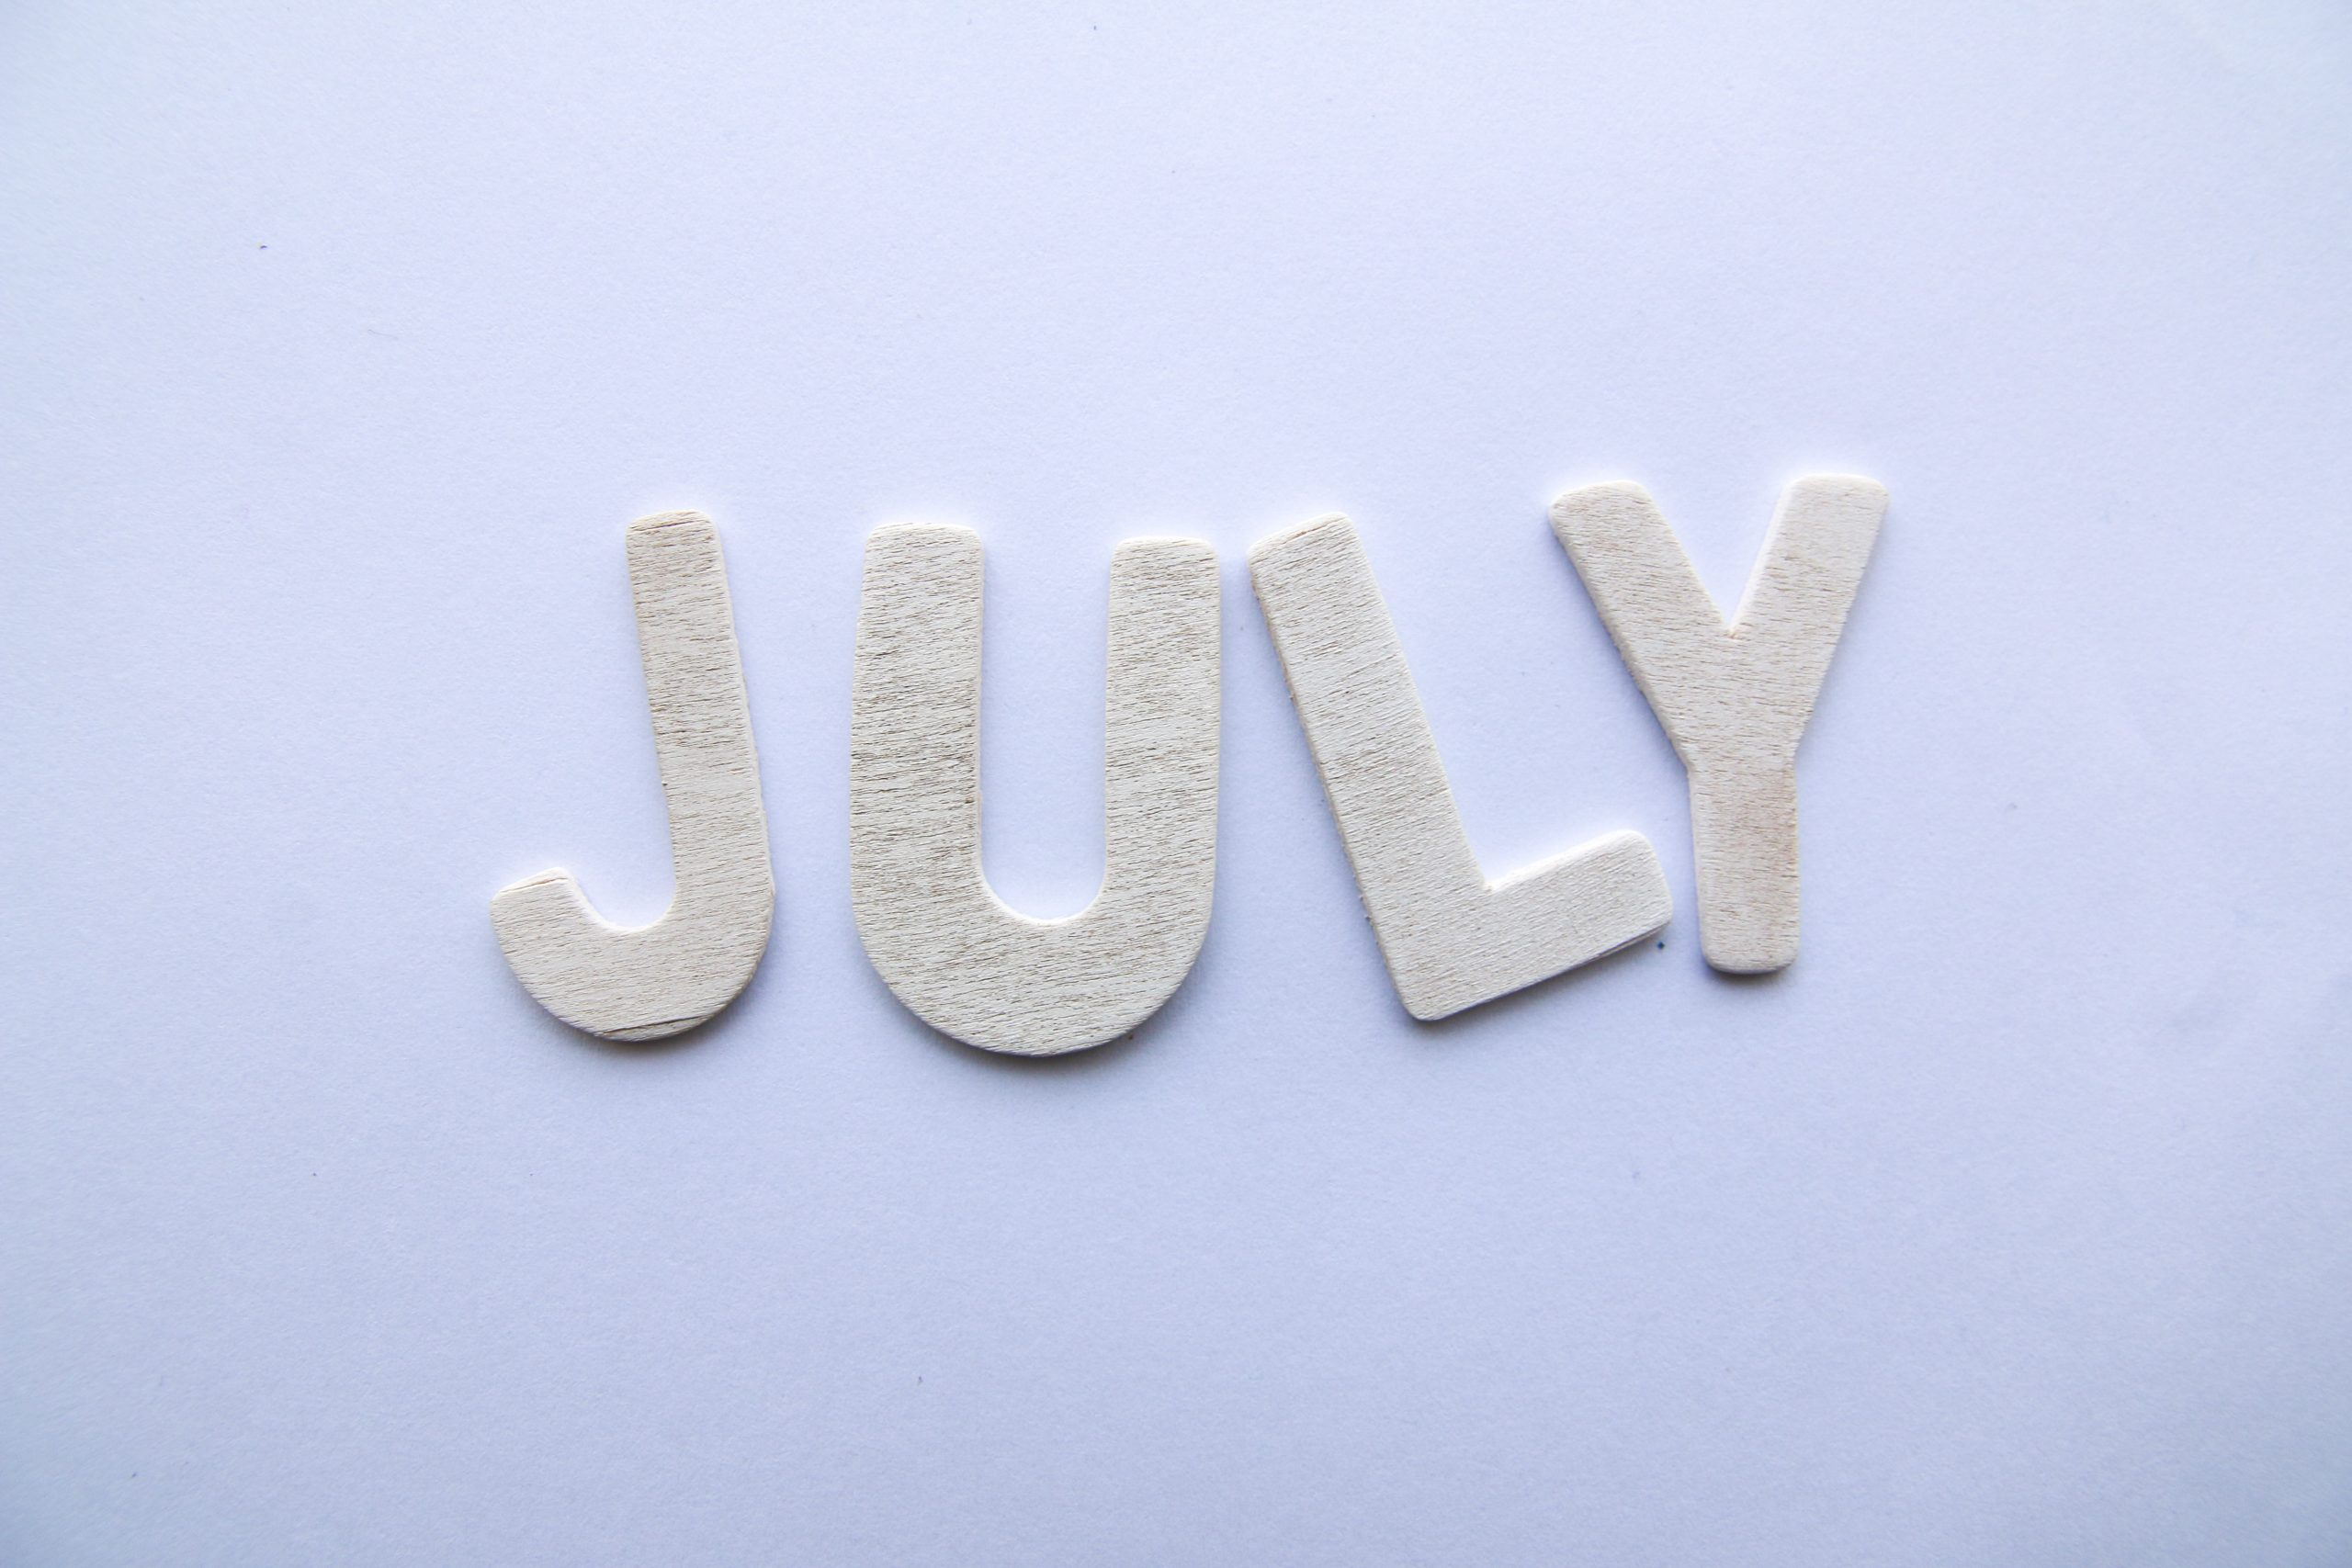 the word 'July' written using paper cuts